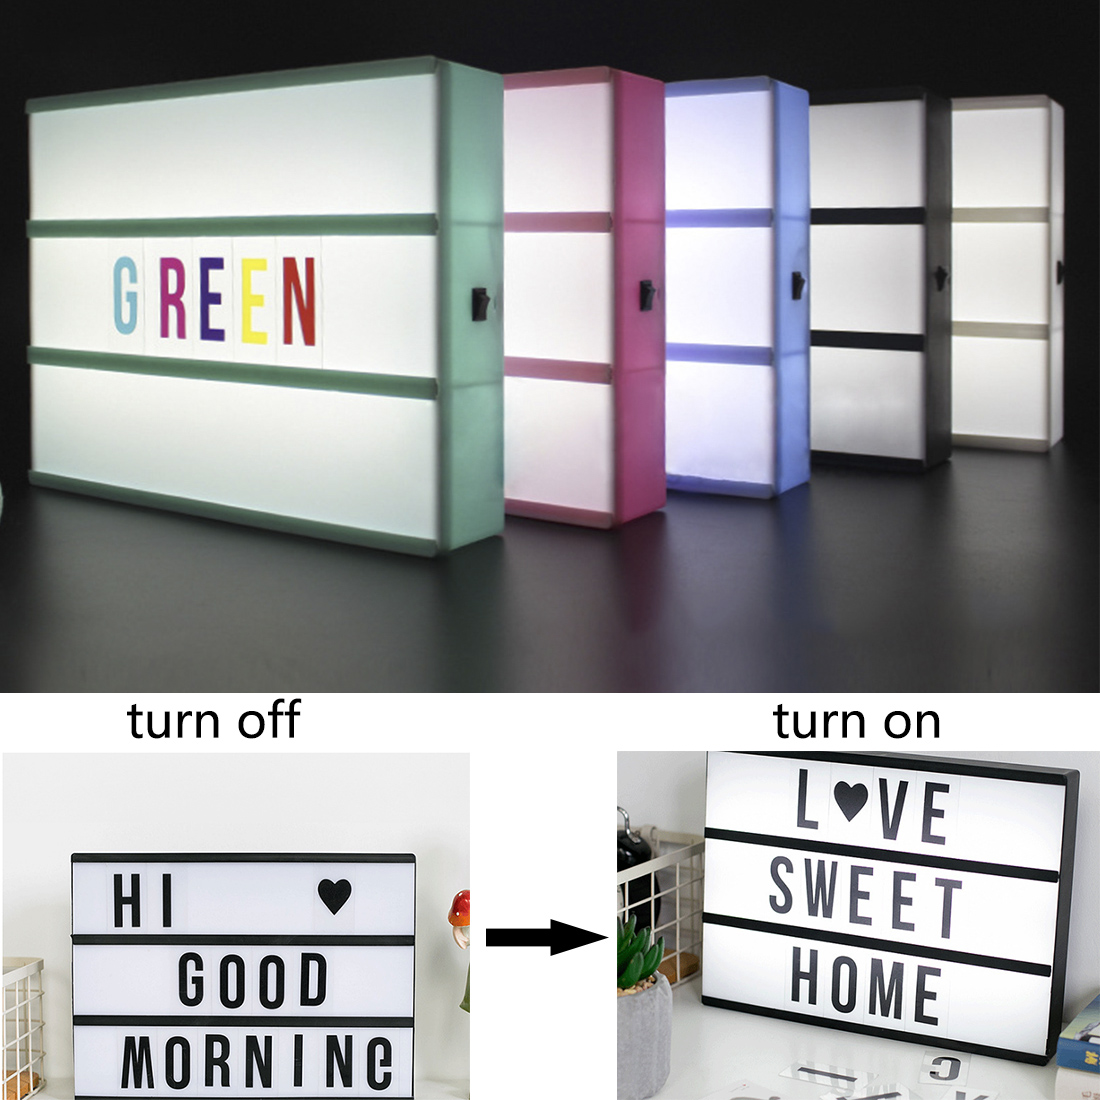 LED Light Box Letters DIY Lightbox Black Letters Cards Combination Night Light A6 Size White Pink Black Green Cinema LampLED Light Box Letters DIY Lightbox Black Letters Cards Combination Night Light A6 Size White Pink Black Green Cinema Lamp